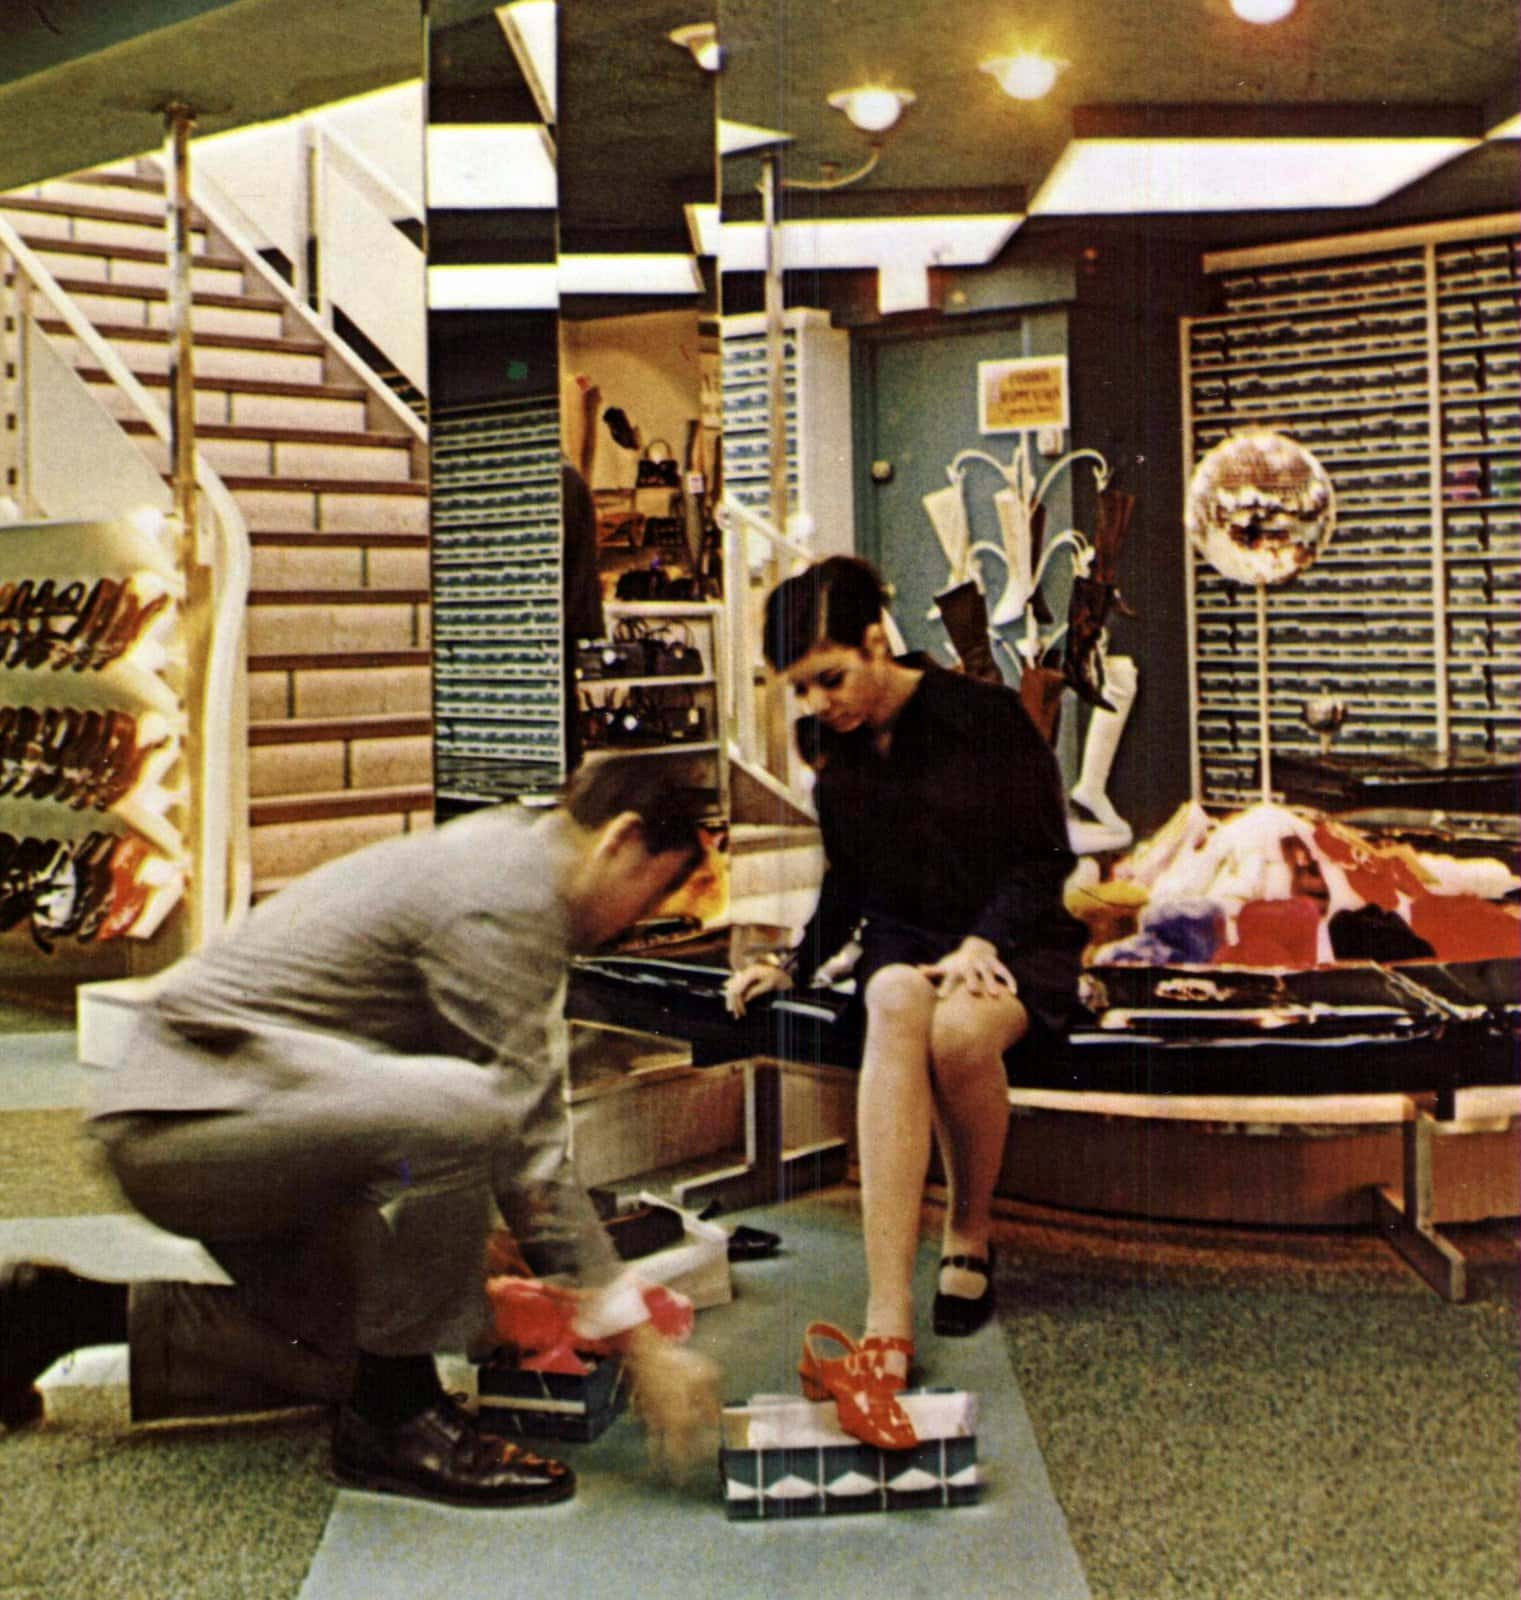 Man helping a young woman try on new shoes (1967)